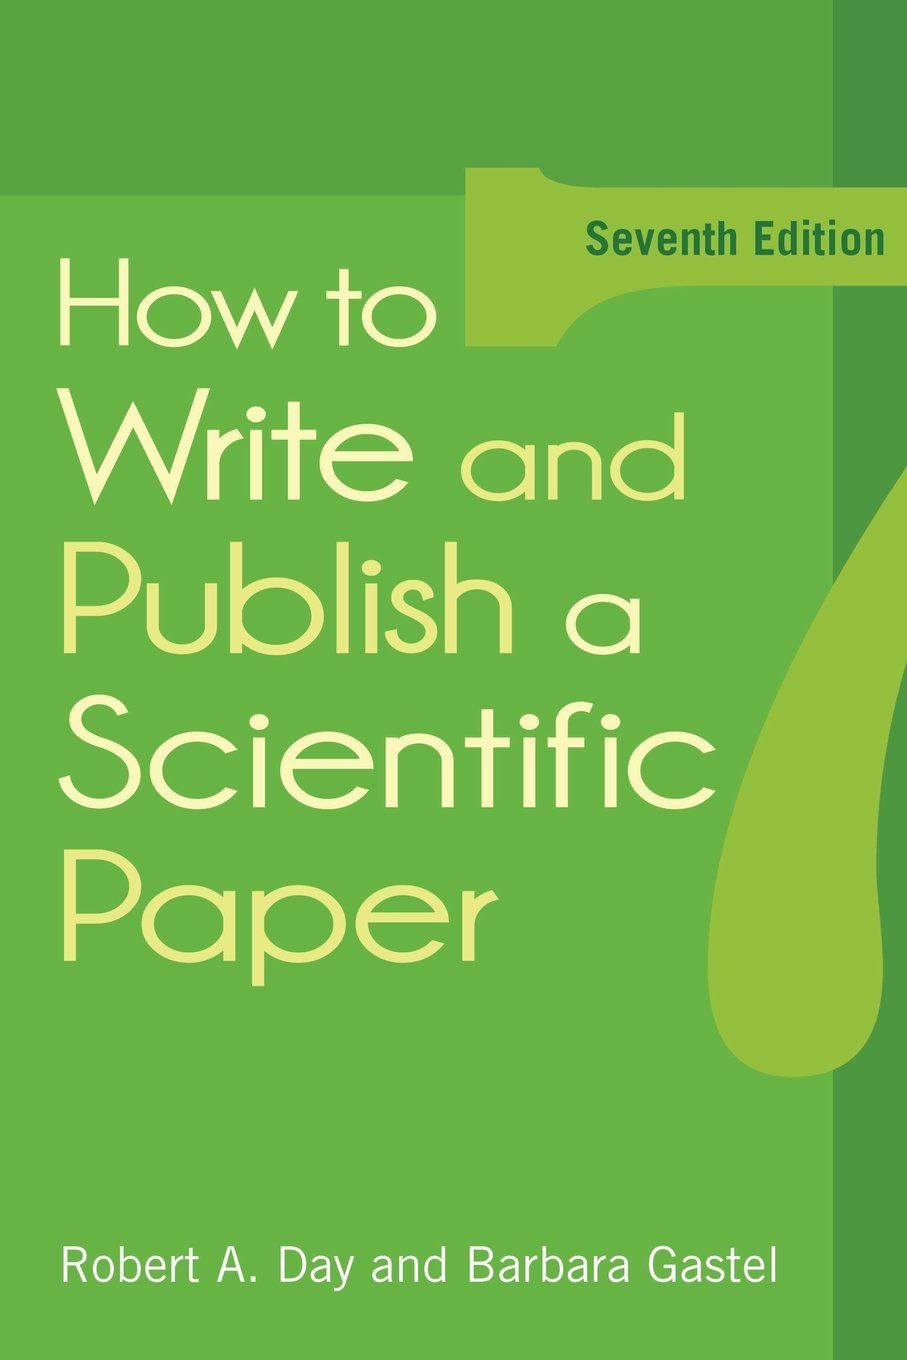 002 Research Paper How To Write Scientific Pdf Writing Sensational And Publish A Computer Science Full